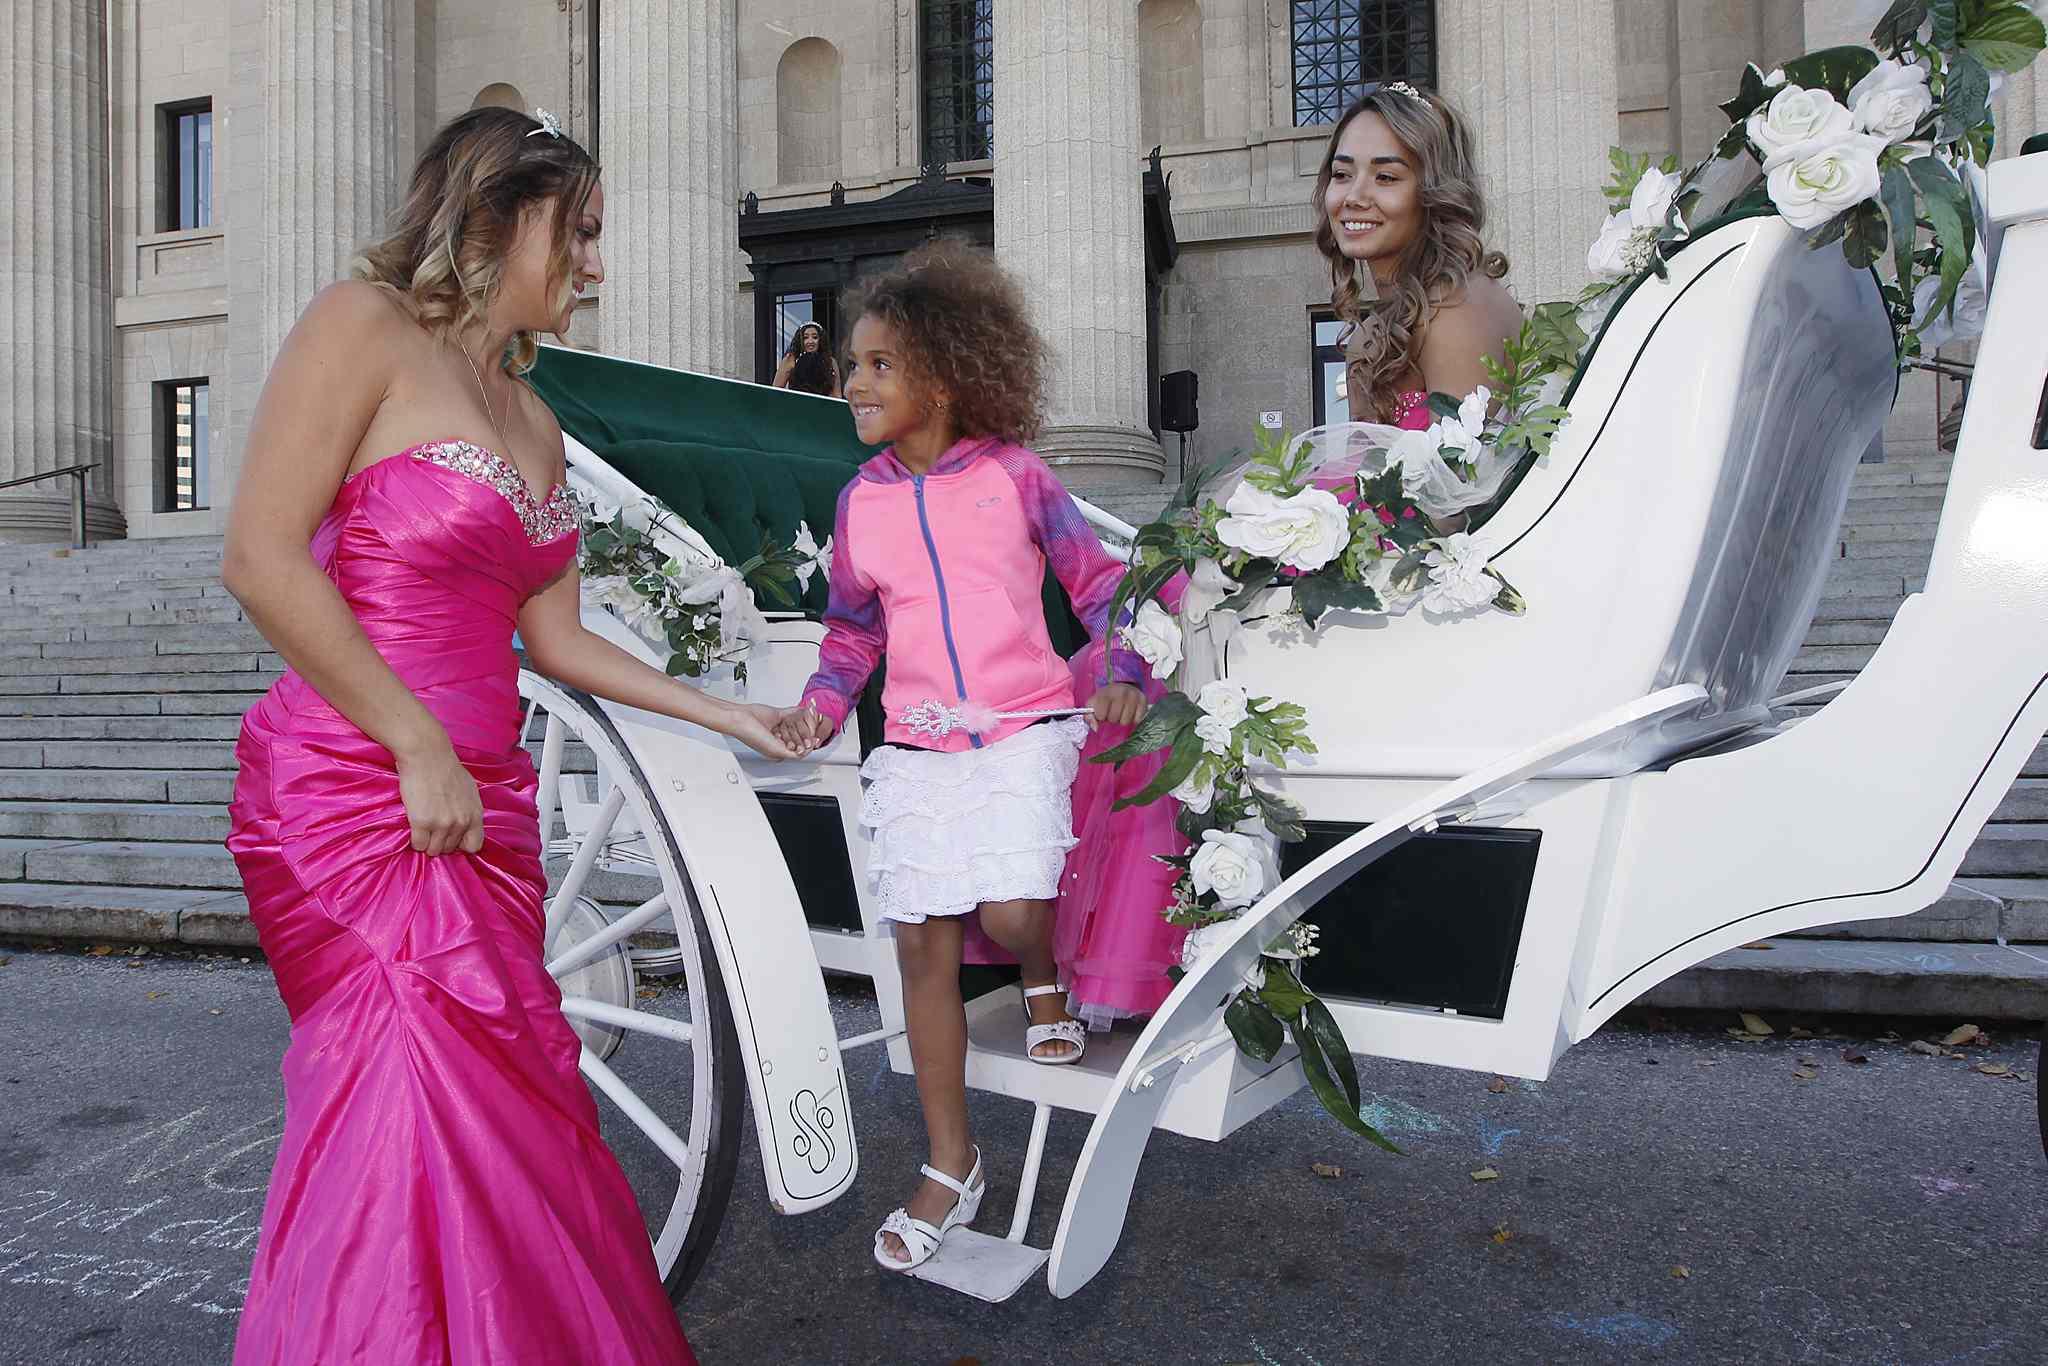 Arriving in style: Princess Gillian Bridges helps Princess Kyanna Speiss off a horse-drawn carriage as Princess Tiffany Tran watches at the Princess For a Day fundraiser Sunday at the Manitoba Legislative Building.